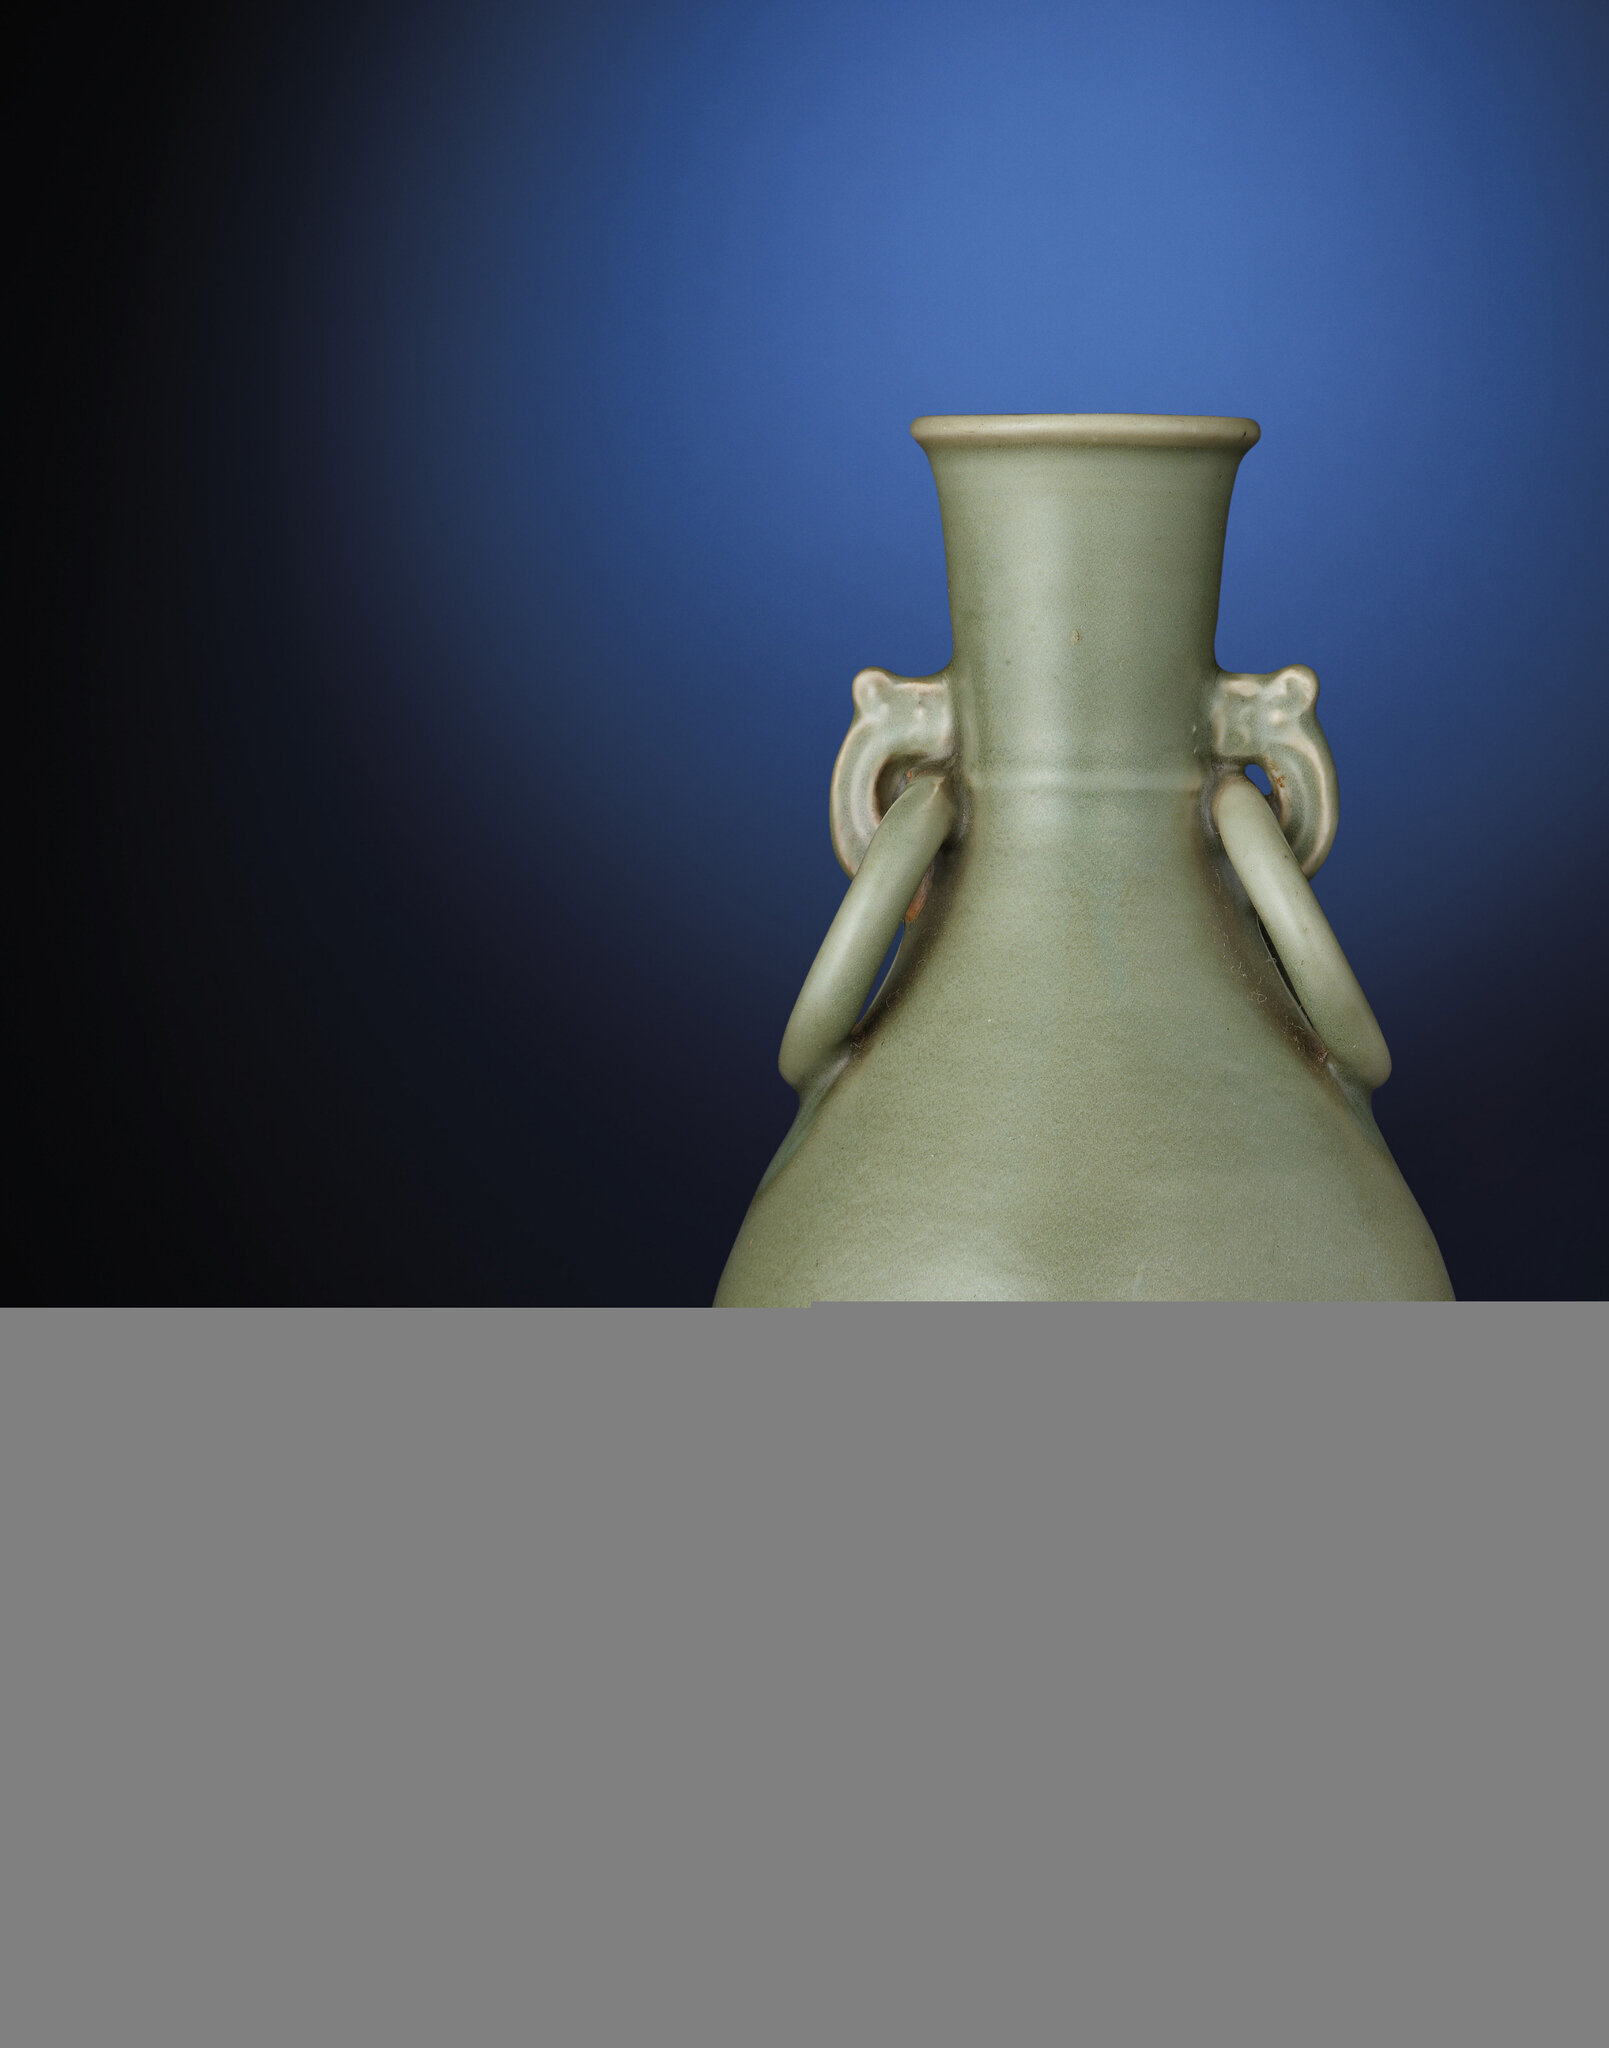 A rare Longquan celadon pear-shaped vase, Yuan dynasty, 14th century, 10 in. (25.5 cm.) high. Sold for HKD 350,000 at Christie's Hong Kong, 30 November 2011, lot 3008. © Christie's Images Ltd 2011